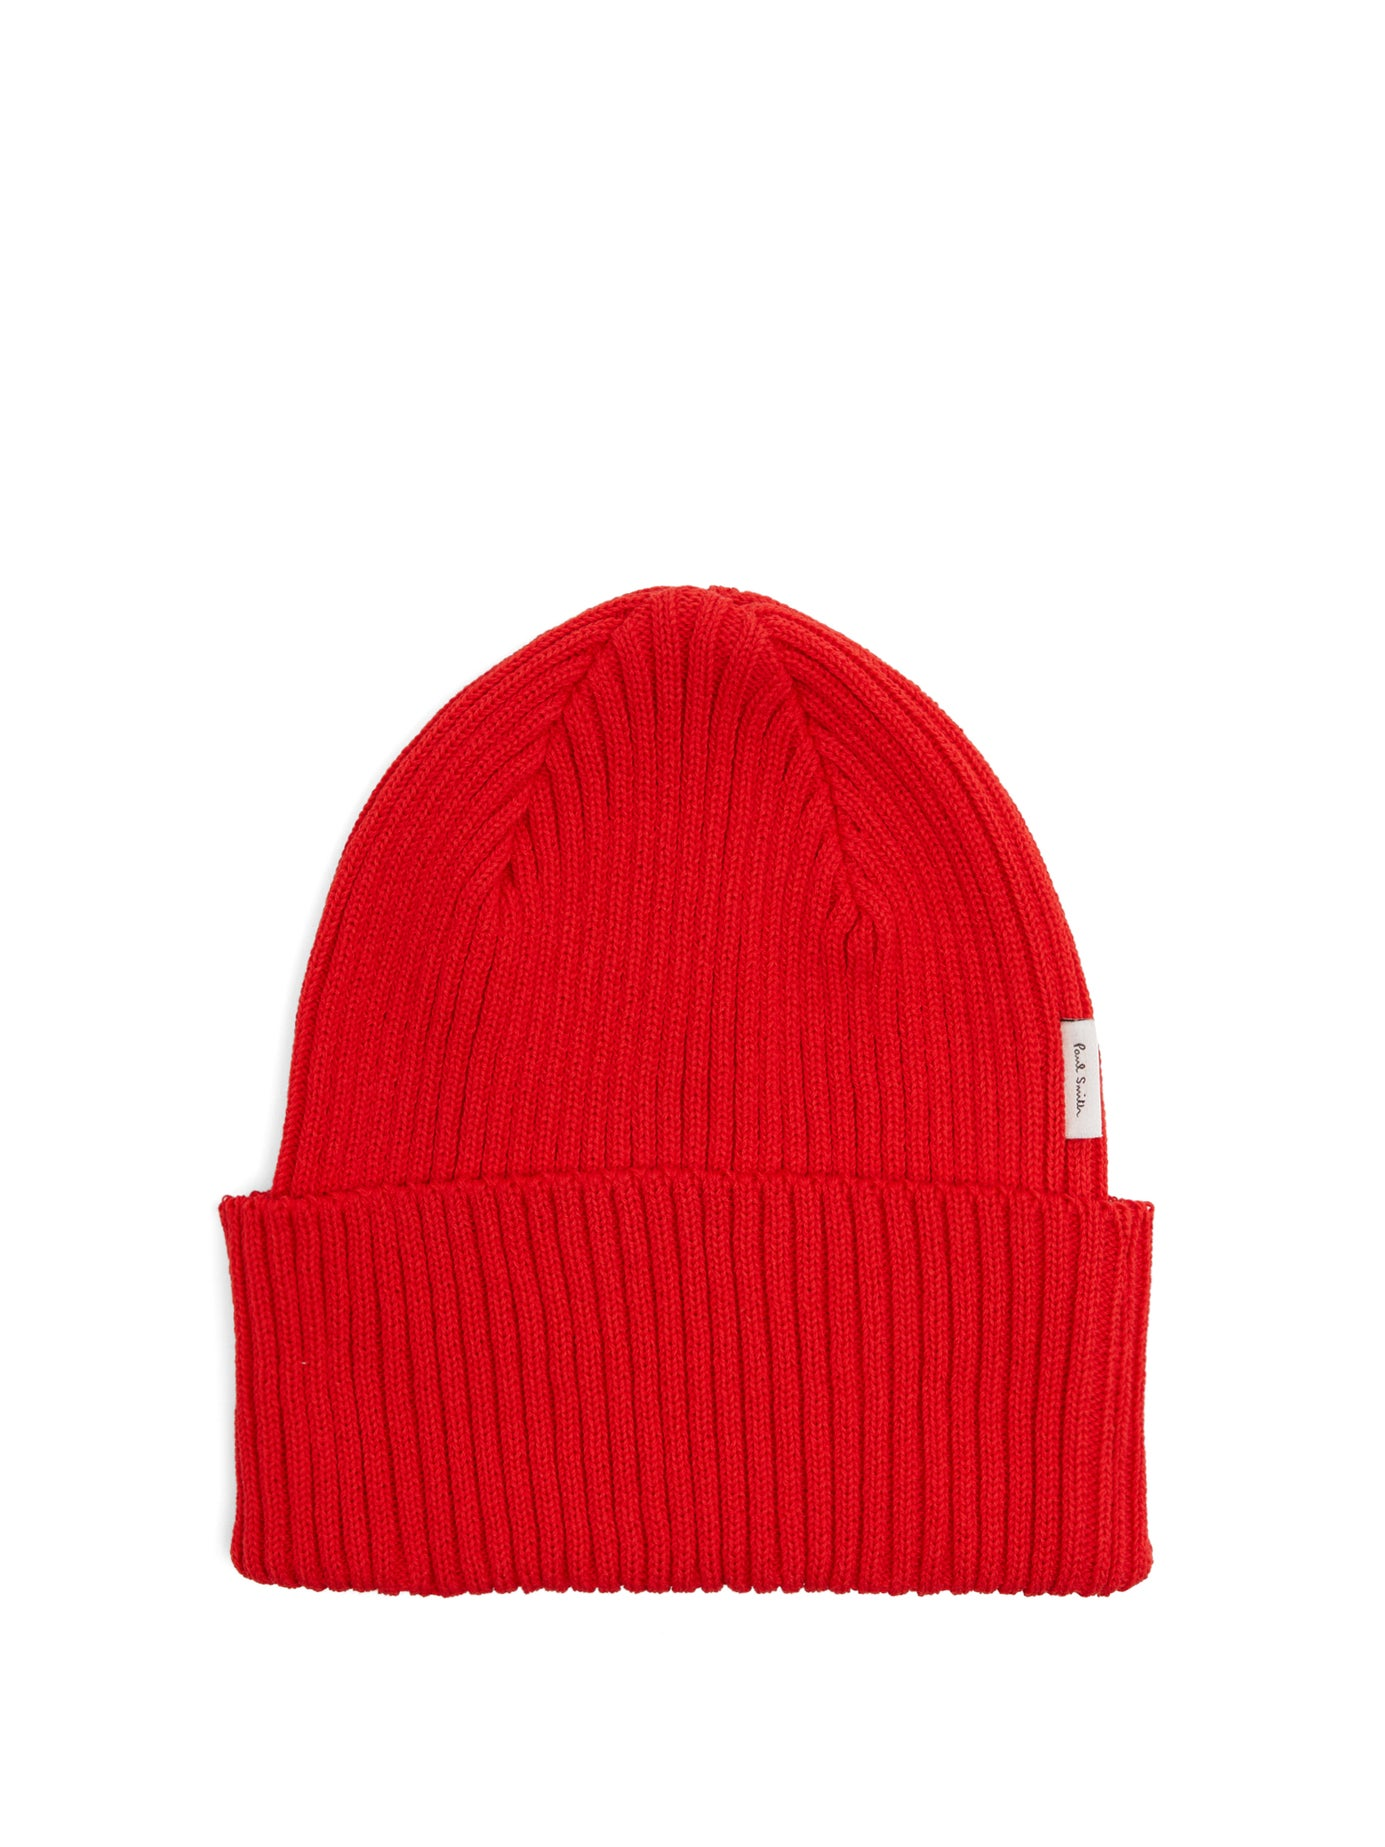 Paul Smith | Cotton beanie hat | Clouty